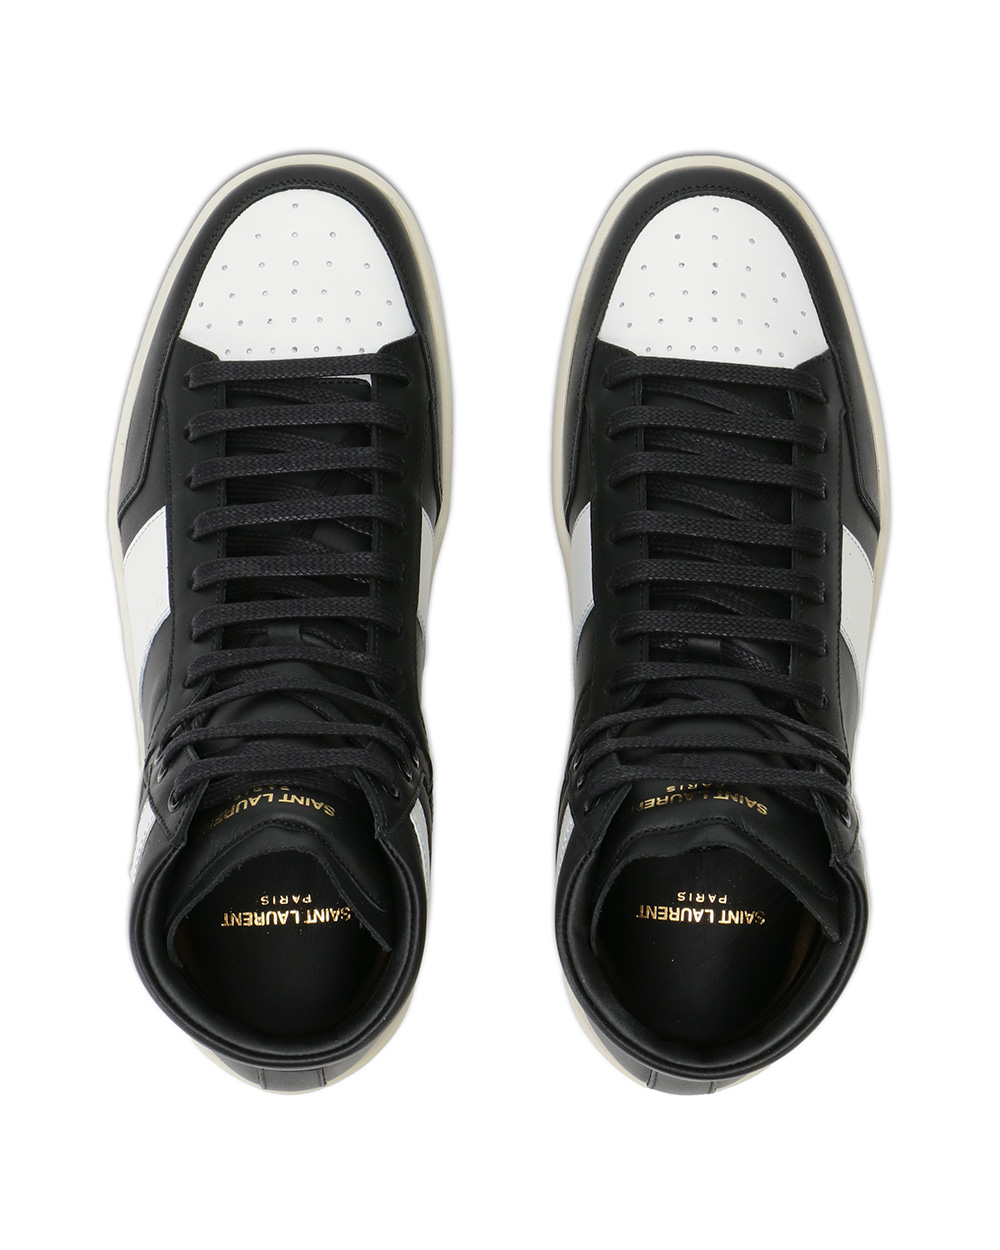 Signature Court Classic SL/10H High Top Sneakers 3